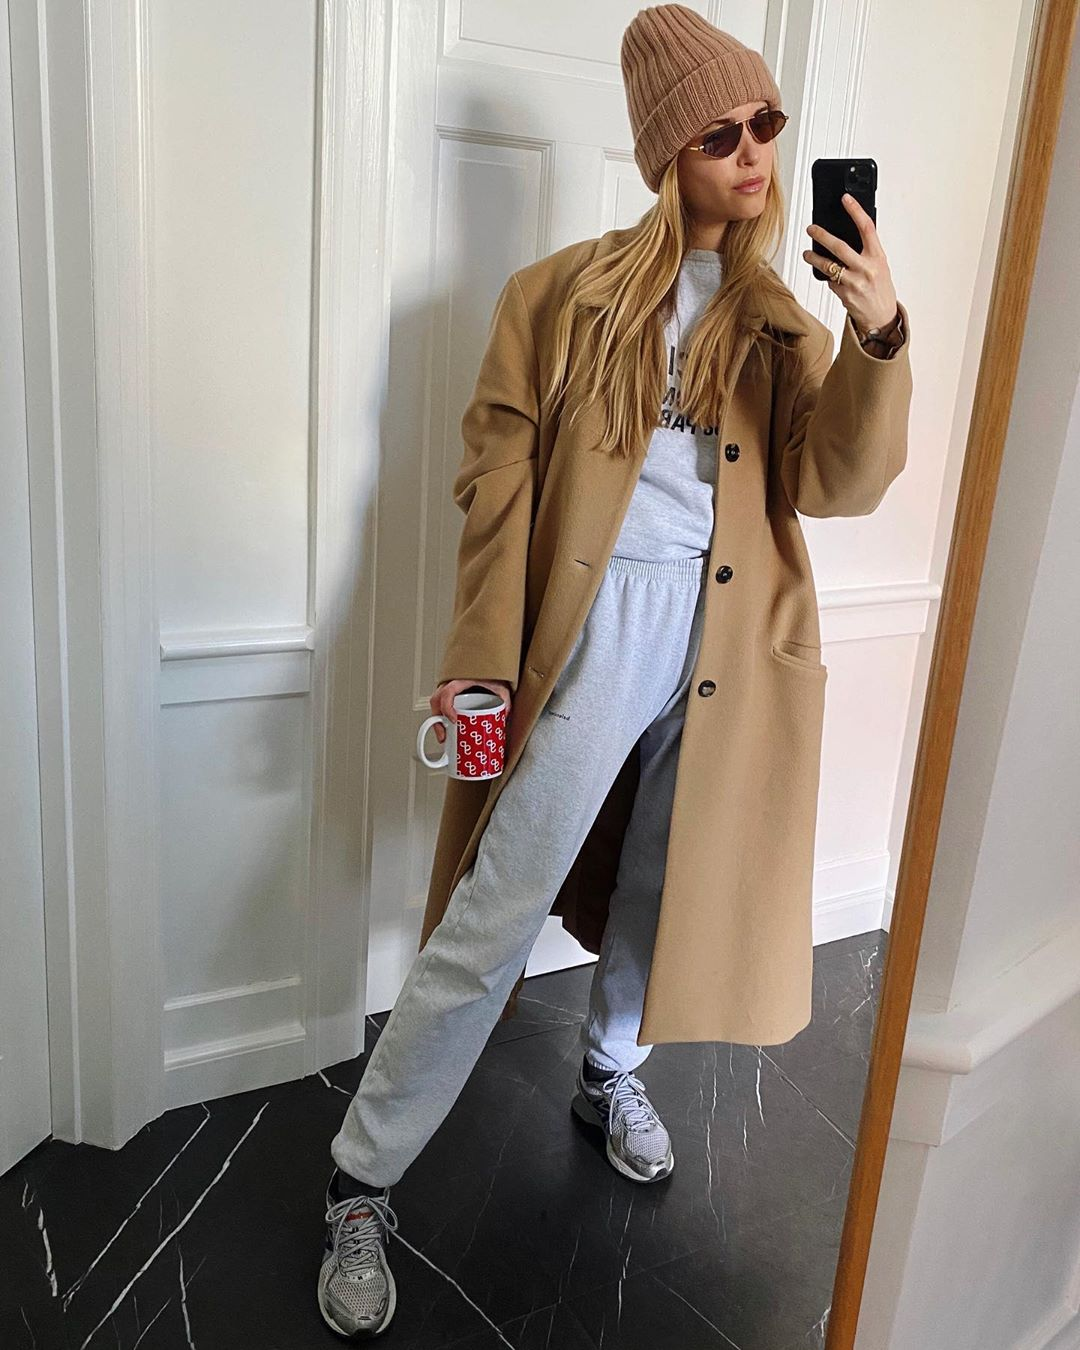 pernille-teisbaek-new-balance-860v2-sneakers-instagram